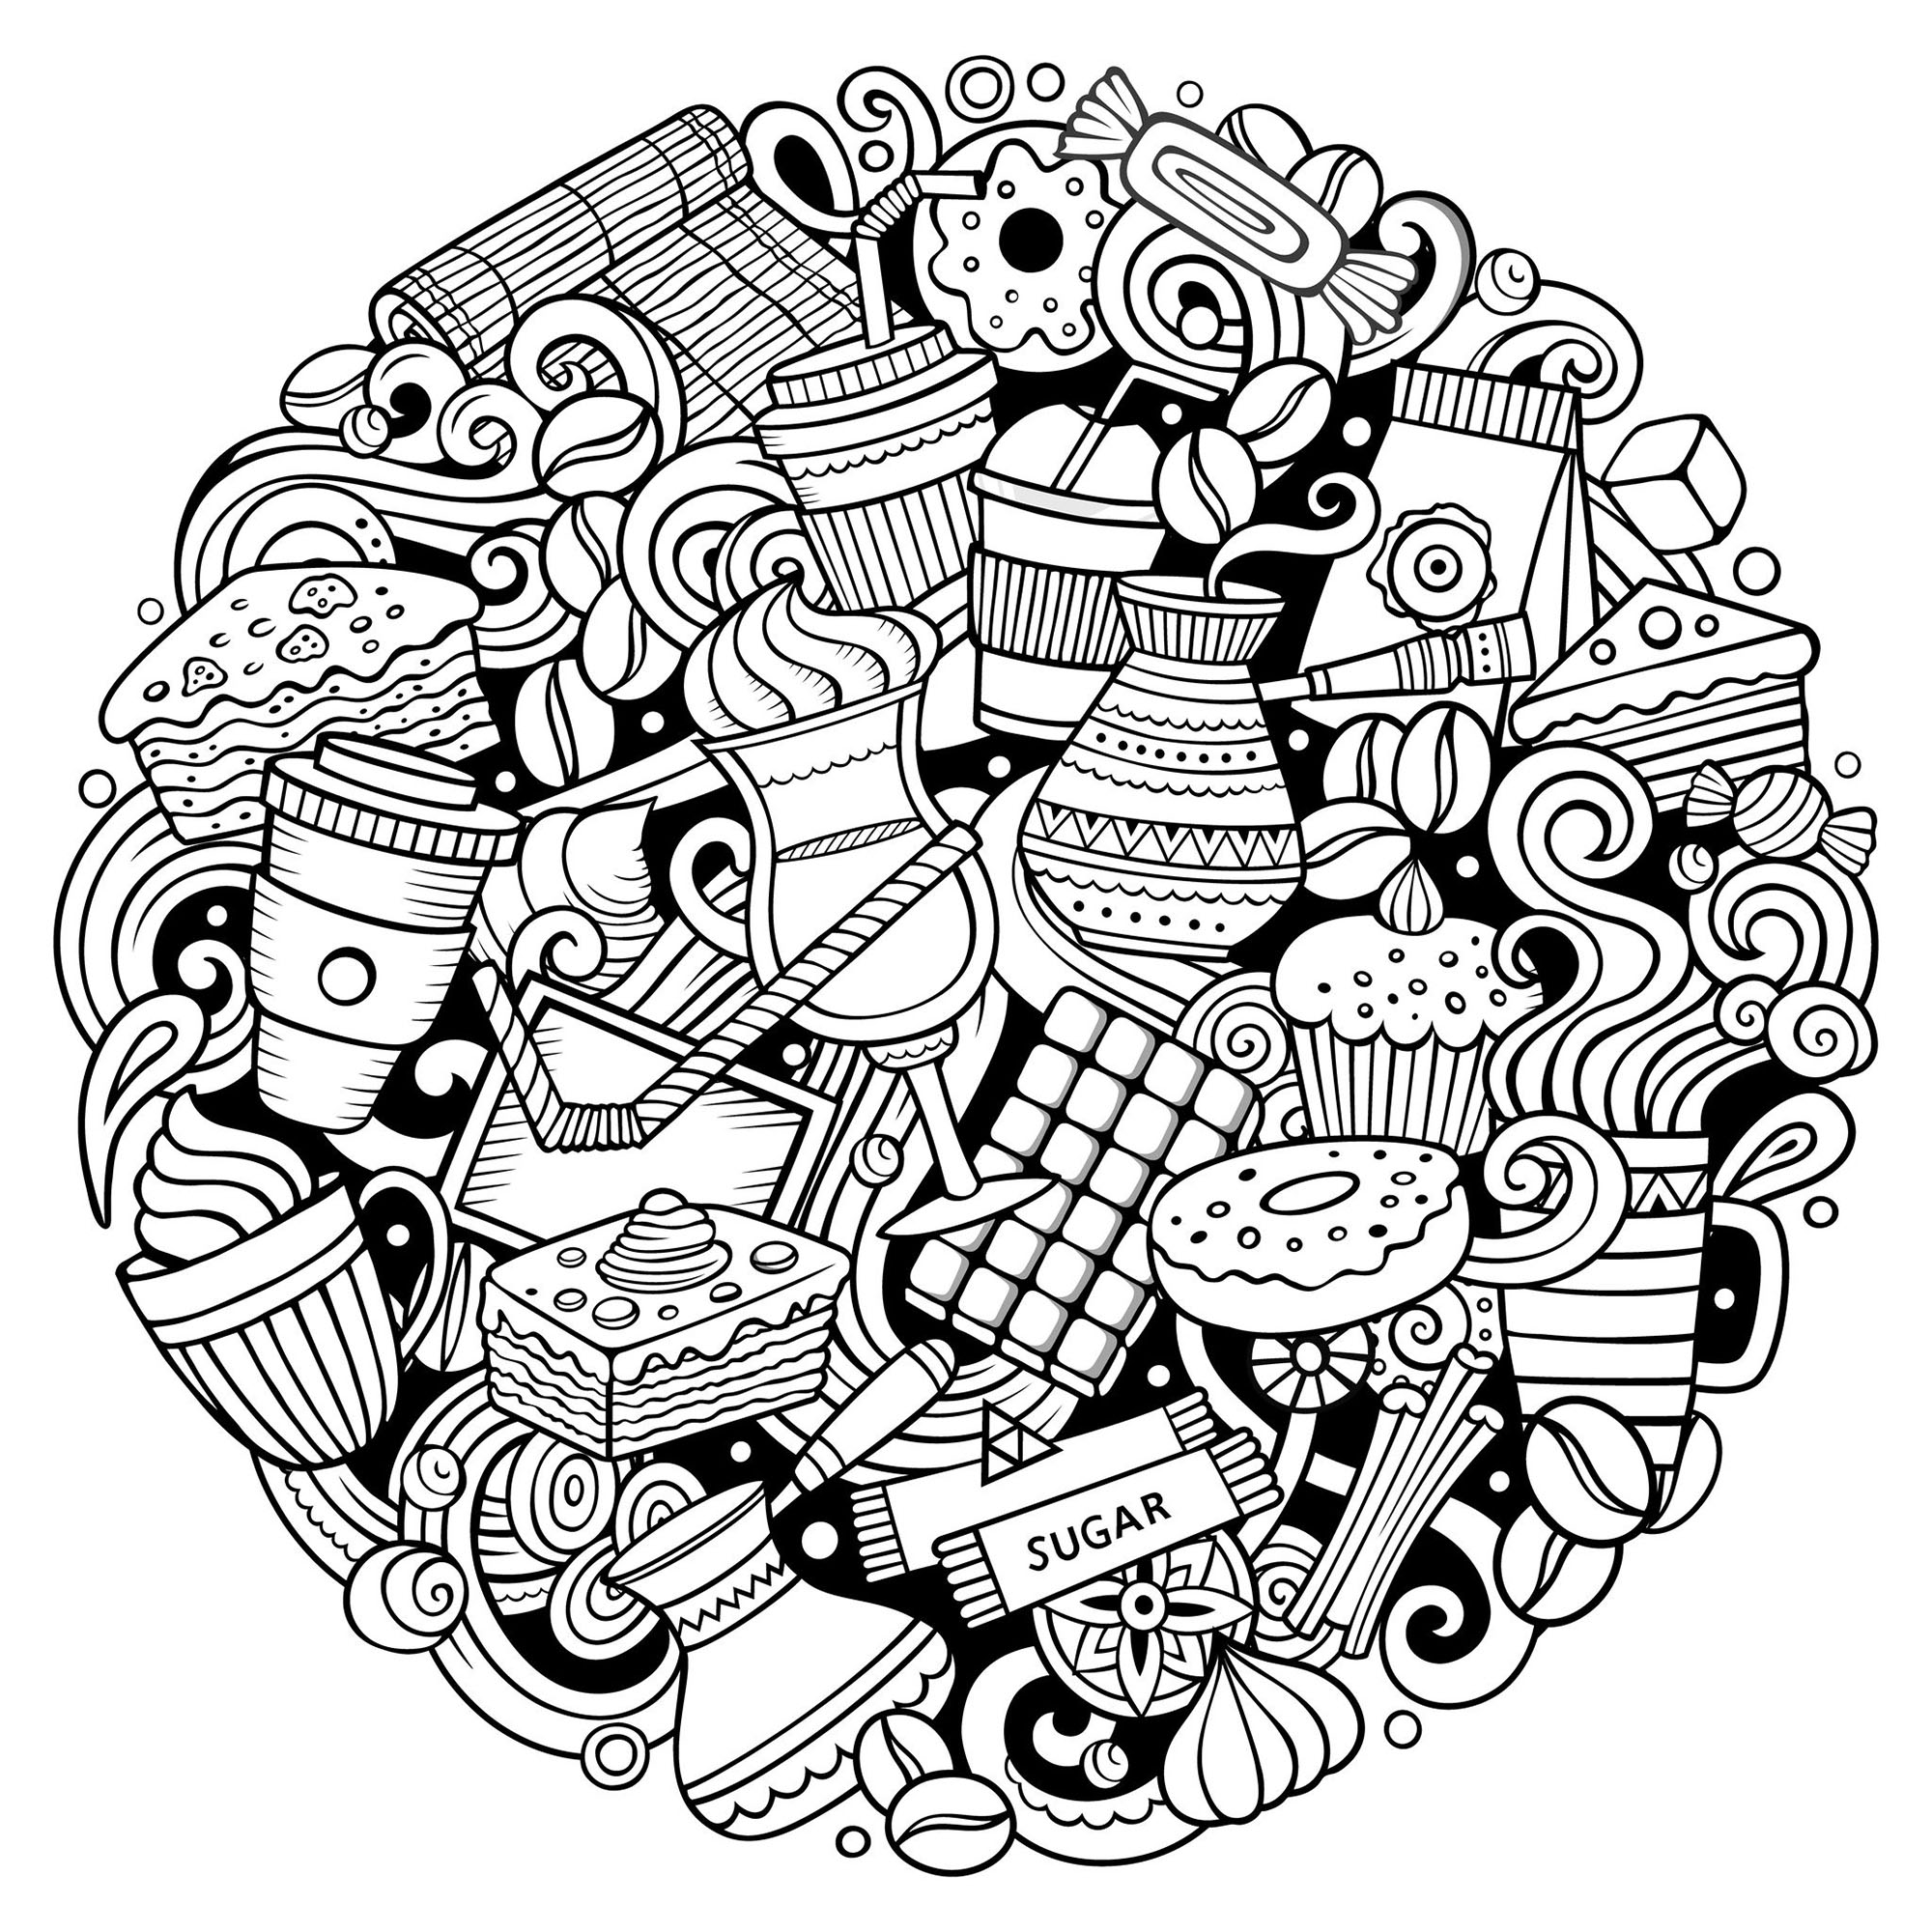 Sweet circle - Cupcakes Adult Coloring Pages